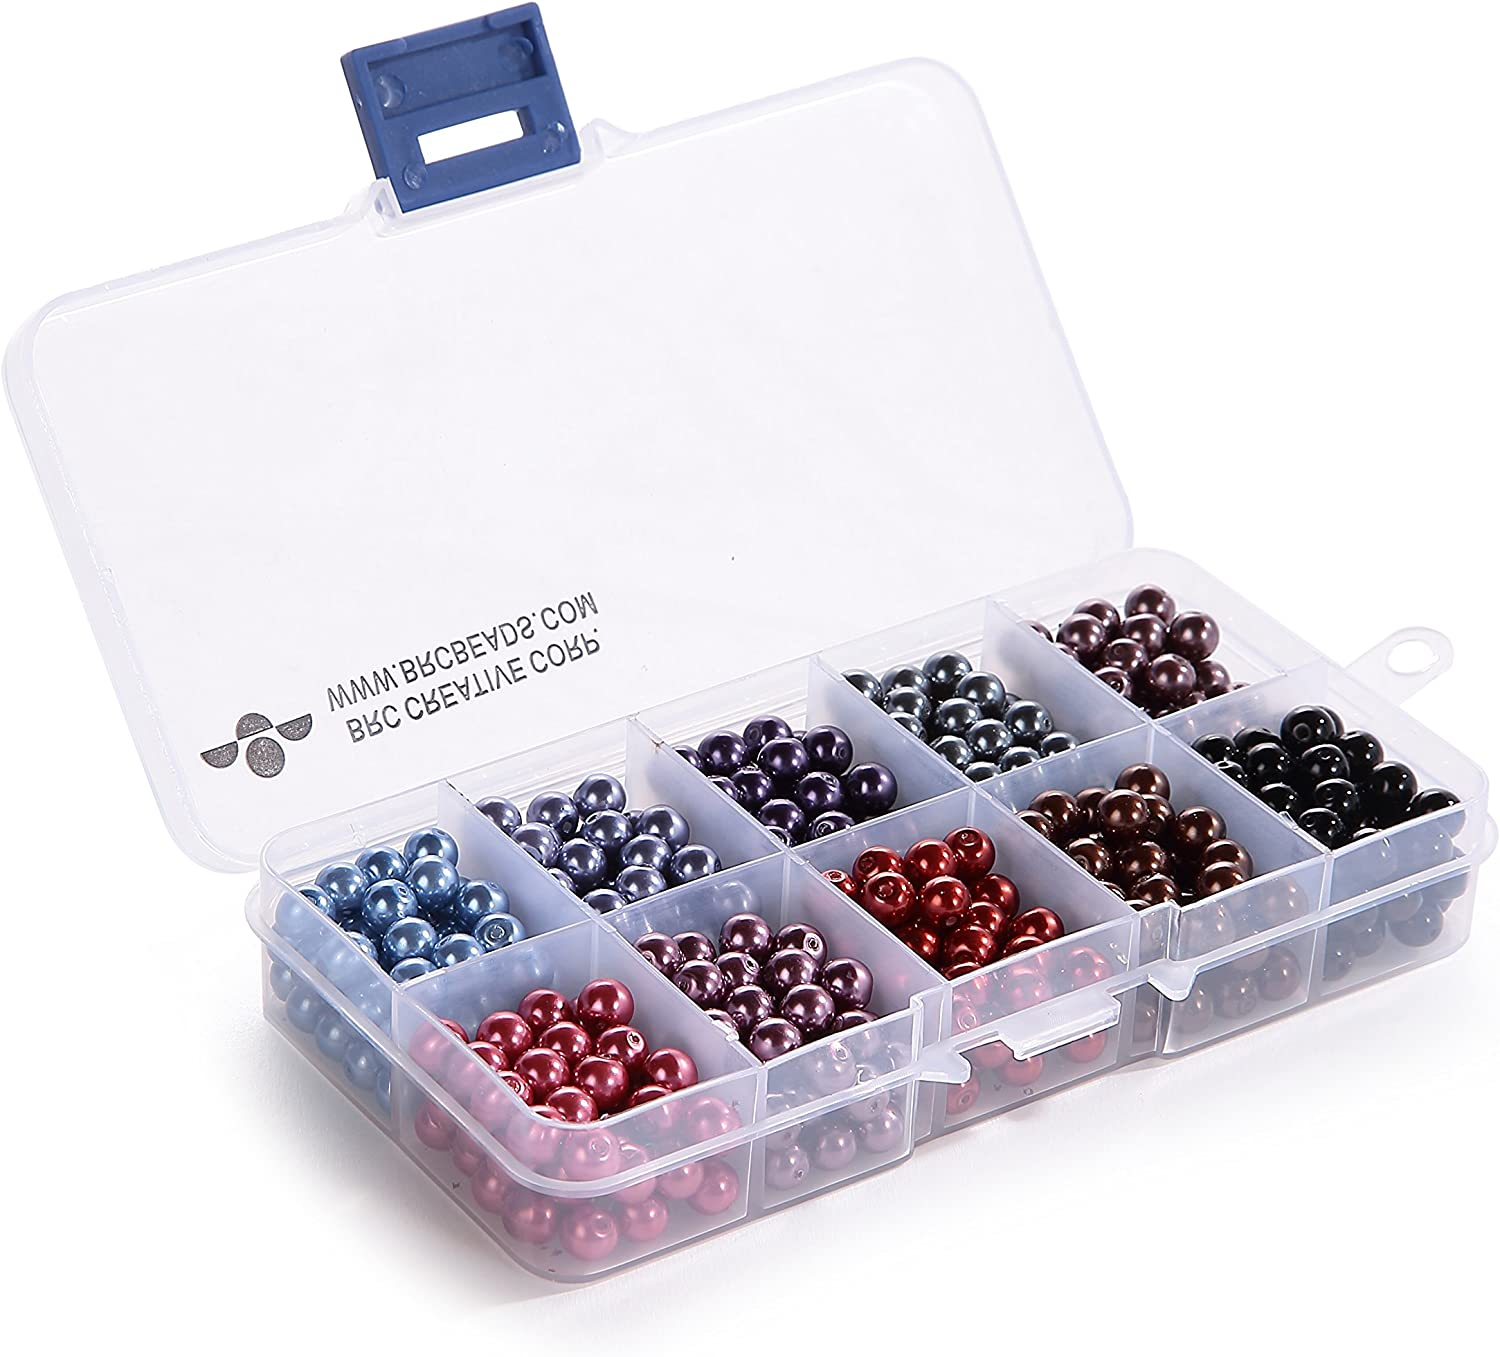 BRCbeads 4mm 1000pcs COOL COLOR Tiny Satin Luster Glass Pearls Round Loose Beads FREE Plastic Jewelry Container Box Wholesale Assorted Mix Lot For Jewelry Making